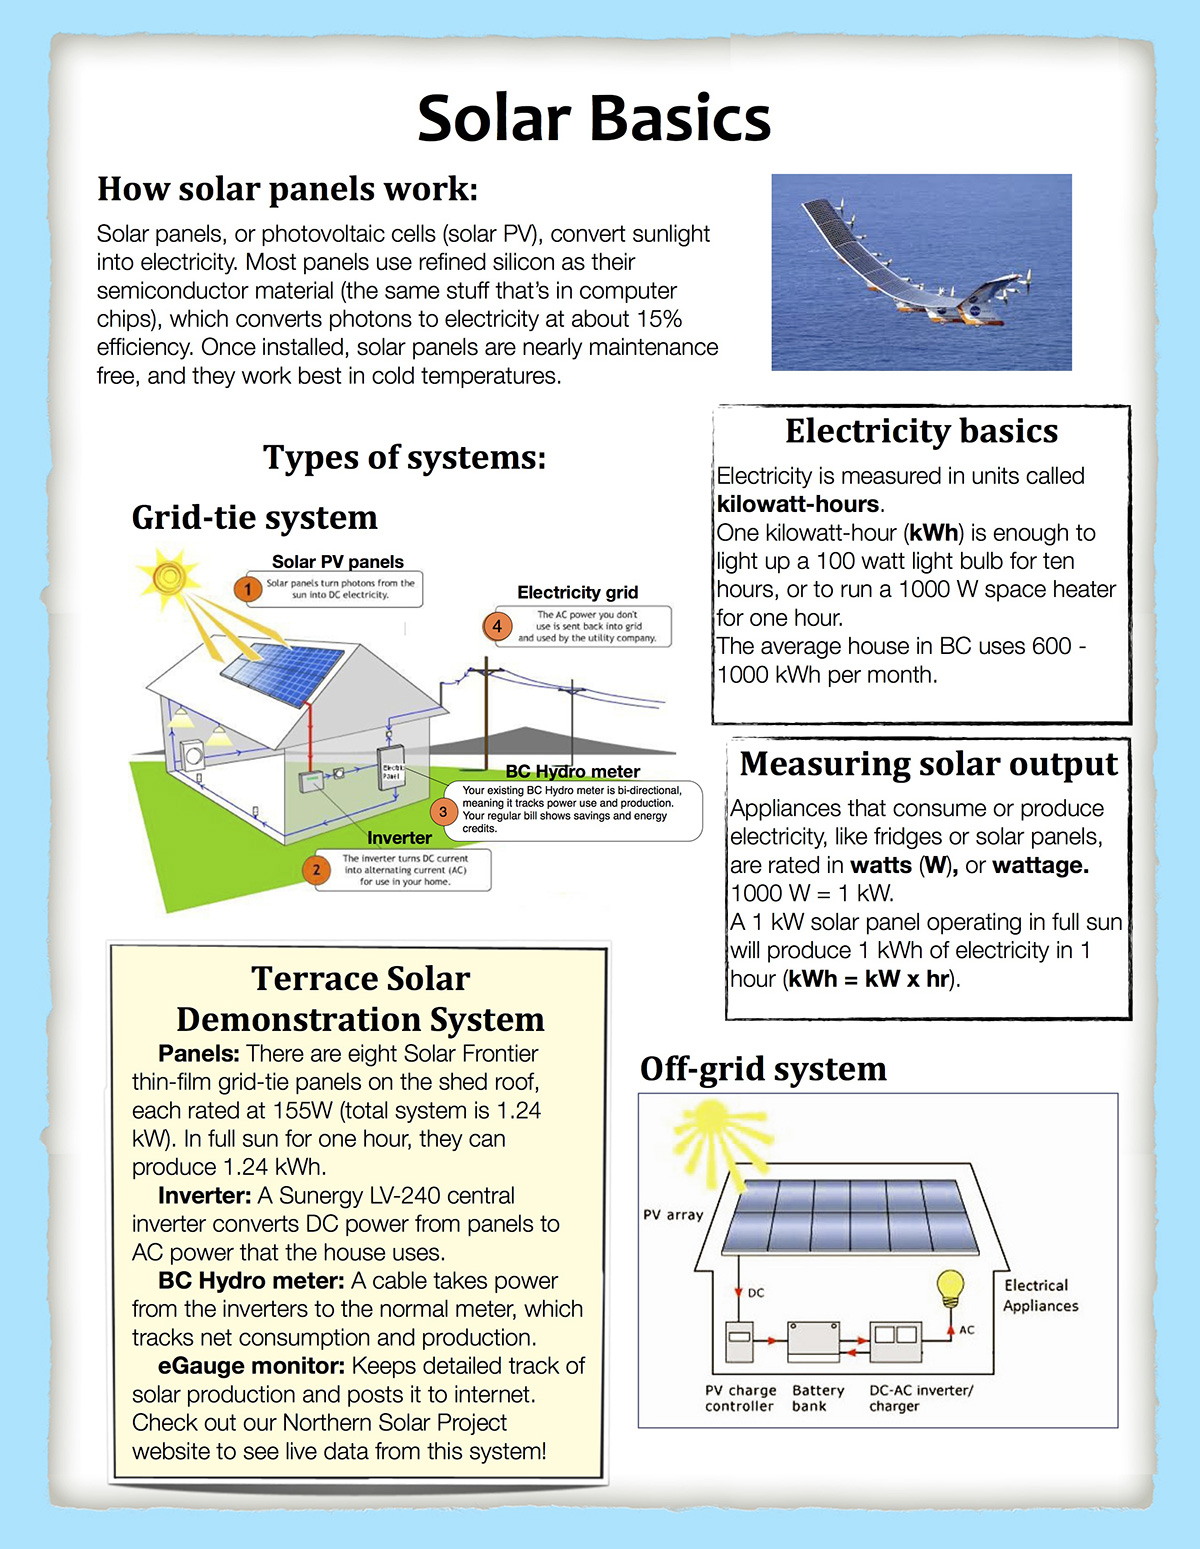 Northern Solar Project - Projects - Skeena Energy Solutions